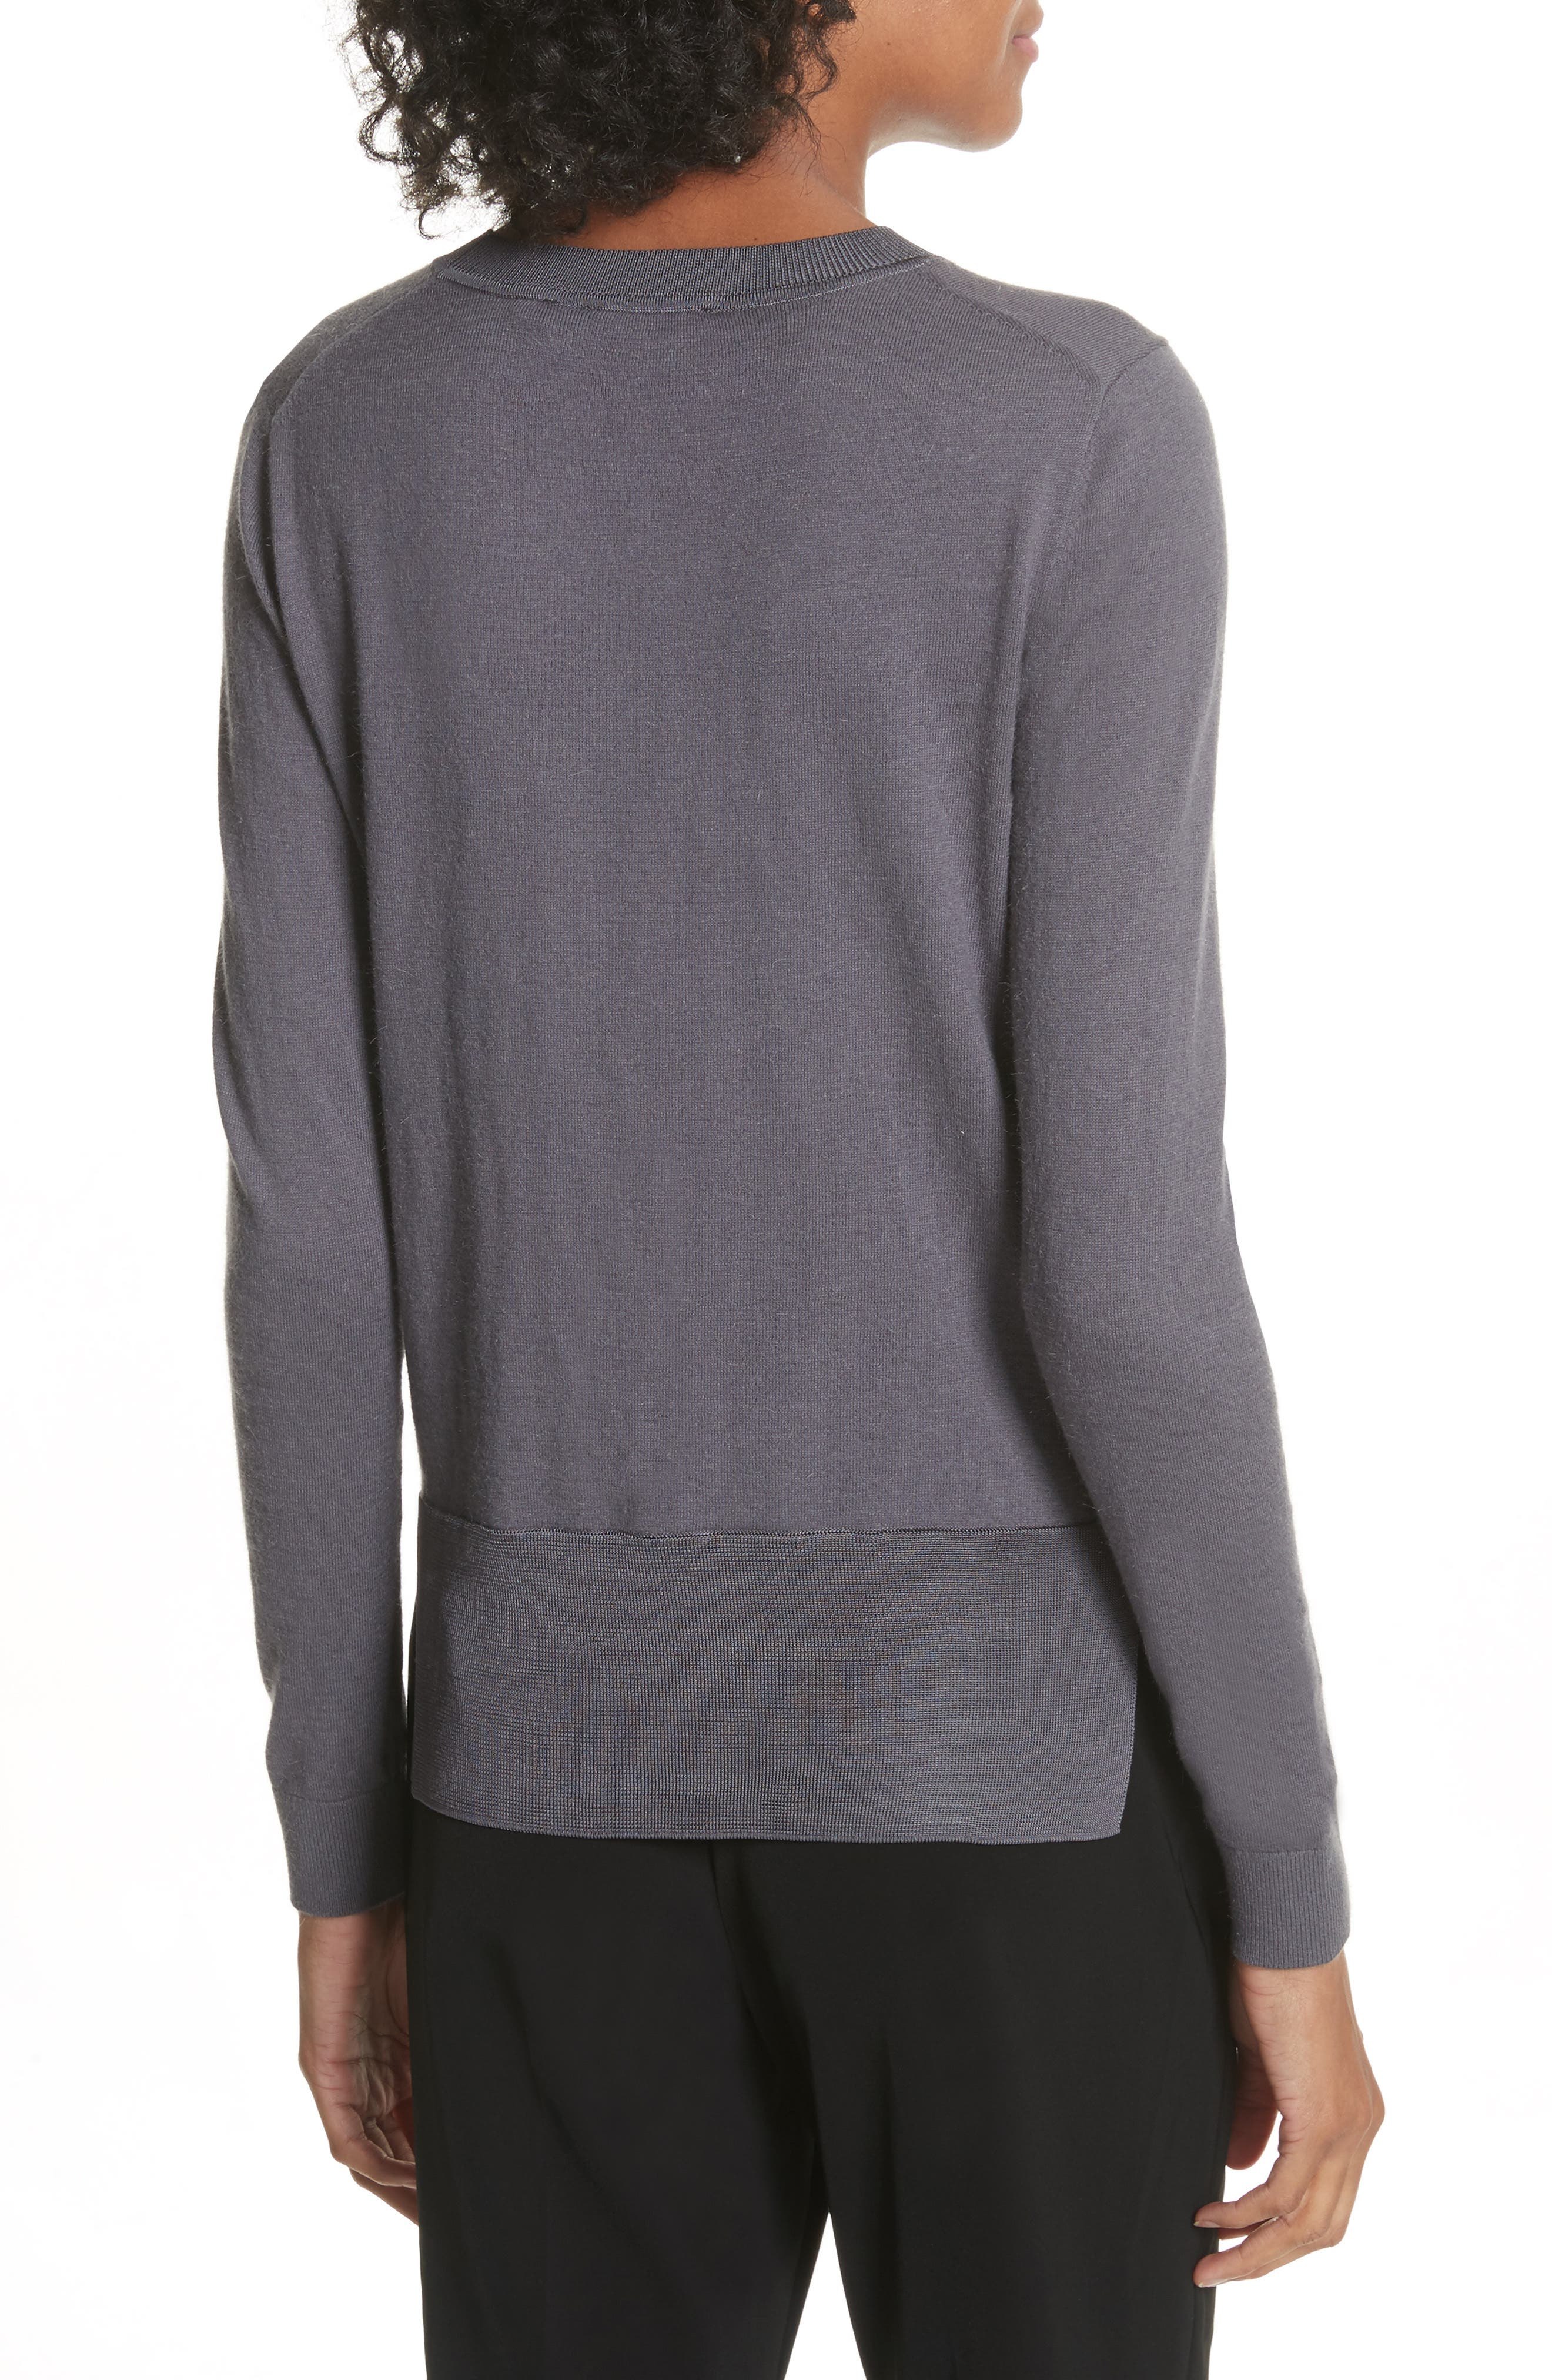 Chatswoth Woven Front Sweater,                             Alternate thumbnail 2, color,                             Grey